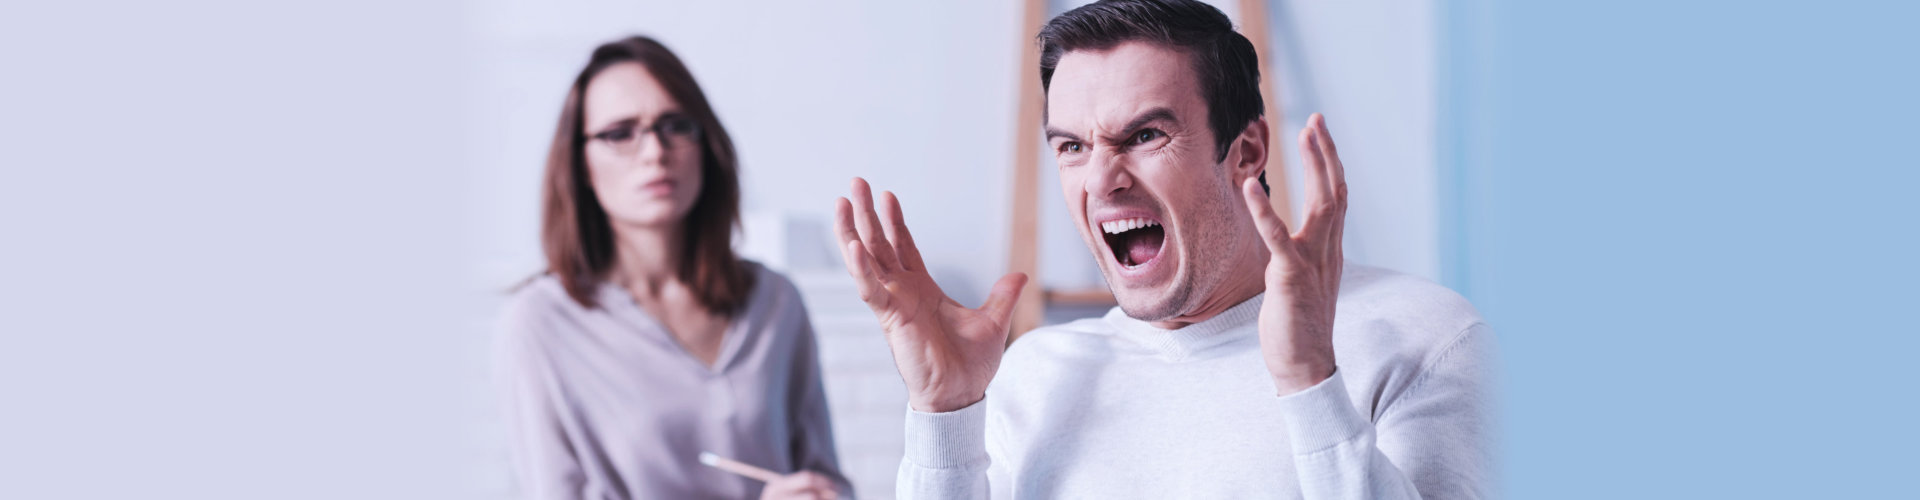 angry furious emotional man at counseling